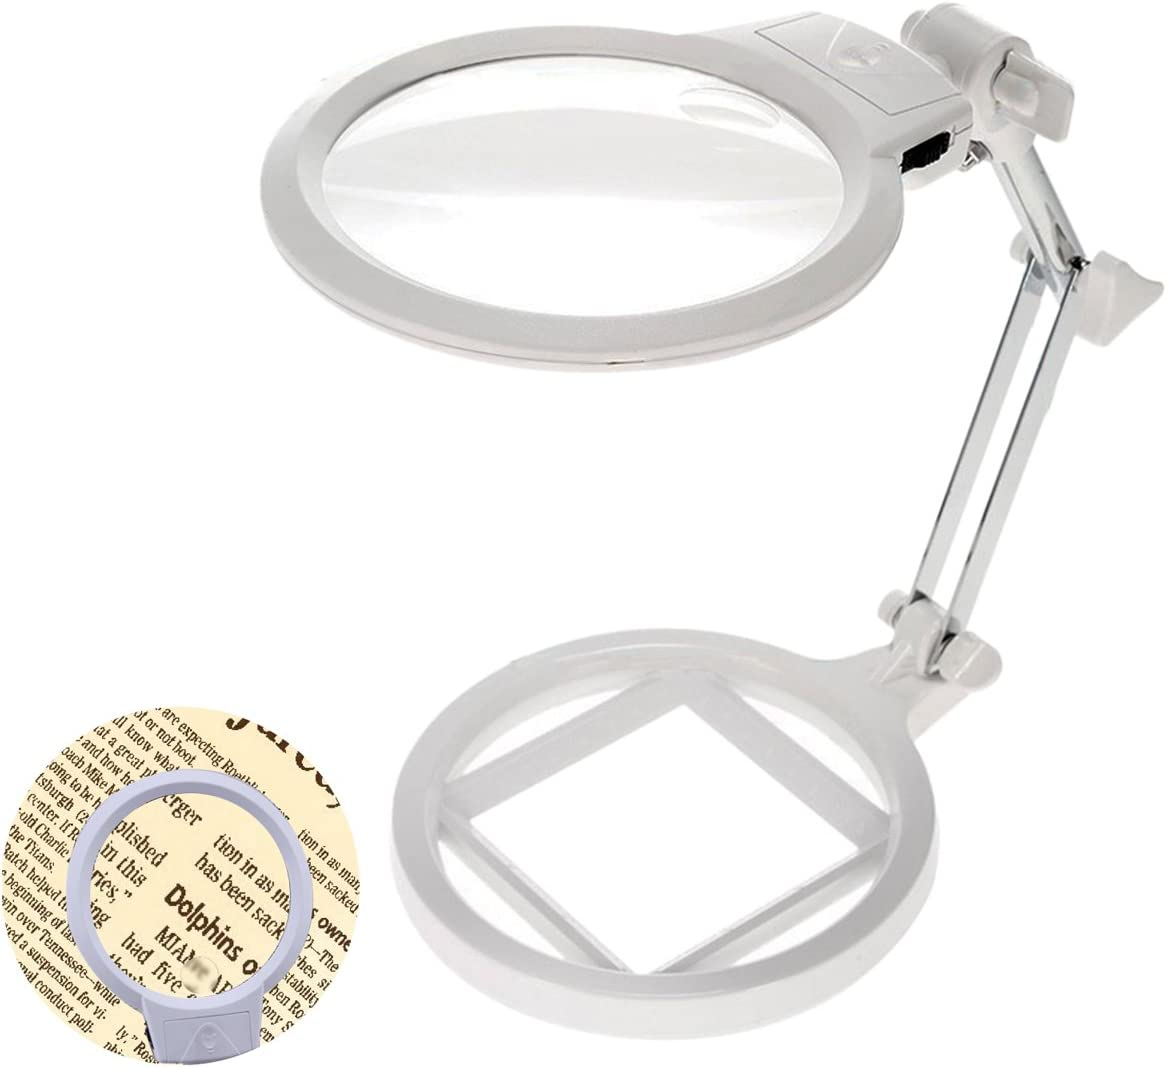 Large Magnifying Glass with Stand, Chof 2X 6X LED Lighted Magnifier Desk Lamp, Hands Free for Low Vision Reading, Jewelry Design, Needlework, Crafts, Study Stamps (Desktop)